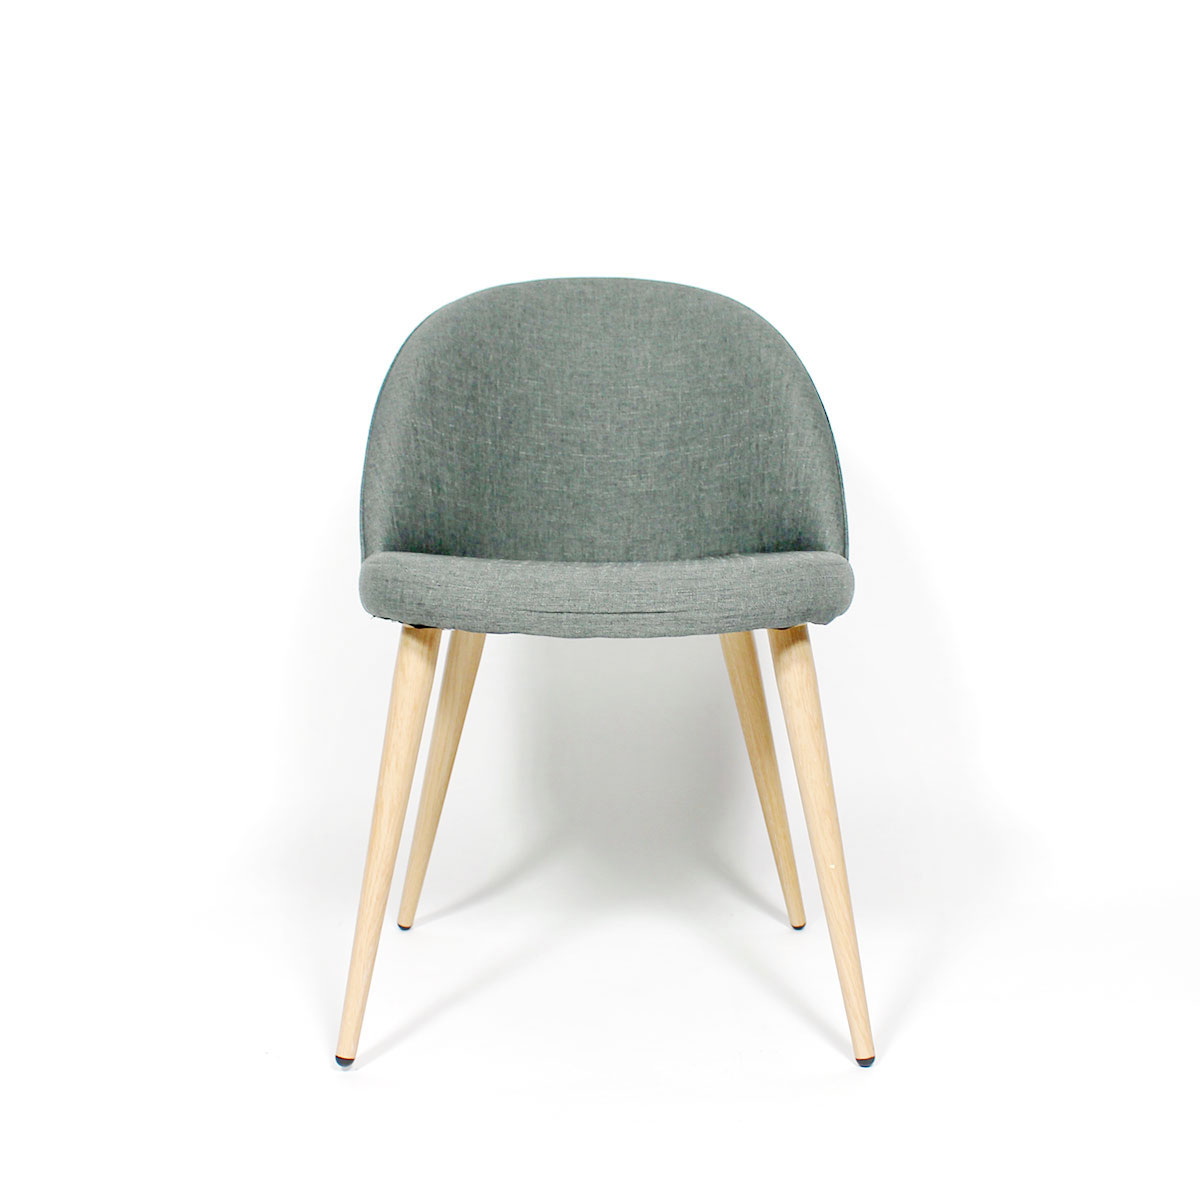 Chaise scandinave gris clair